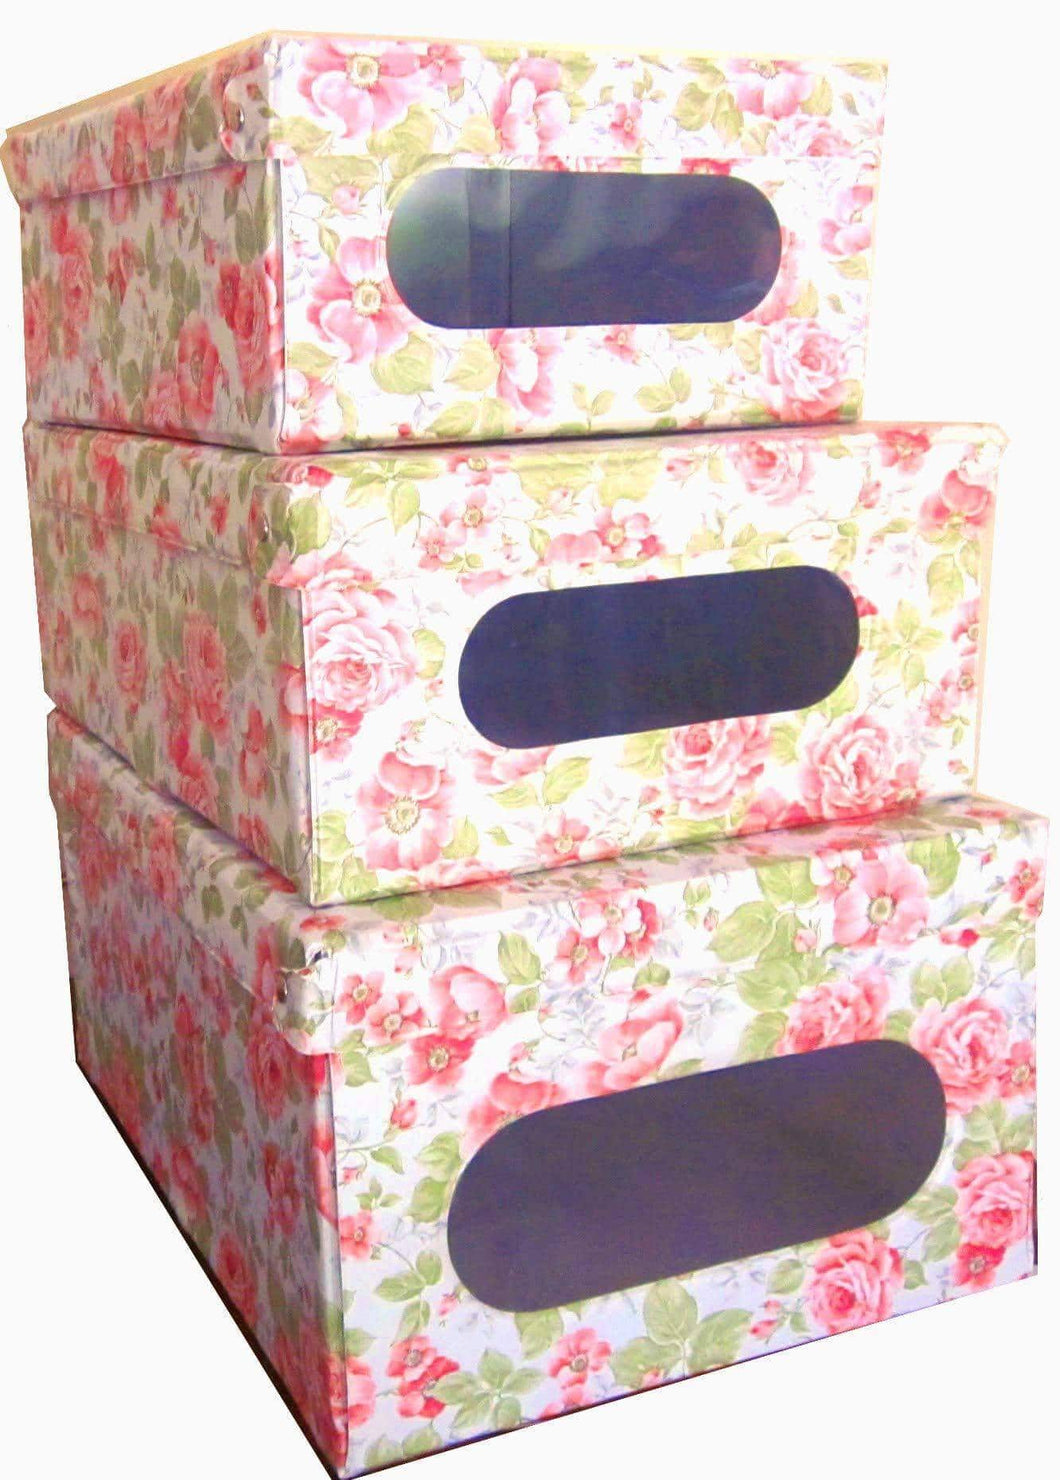 Get protect store organize and keep dust out with our sturdy italian stackable closet storage boxes with hinged lid and window vinyl covered in and out for ez cleaning english rose design set of 3